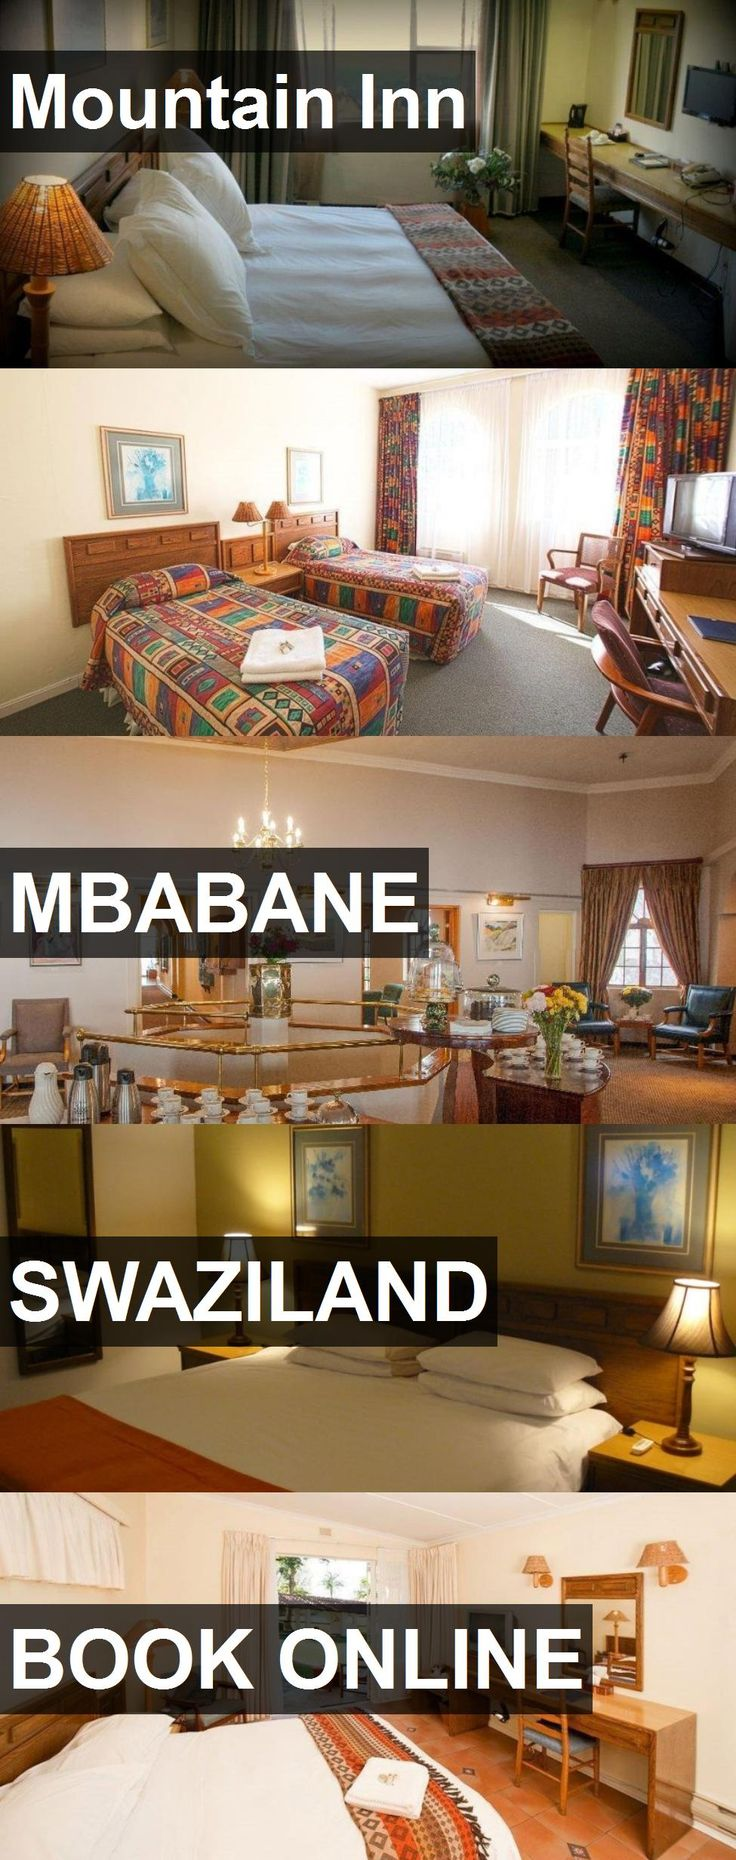 Hotel Mountain Inn in Mbabane, Swaziland. For more information, photos, reviews and best prices please follow the link. #Swaziland #Mbabane #MountainInn #hotel #travel #vacation